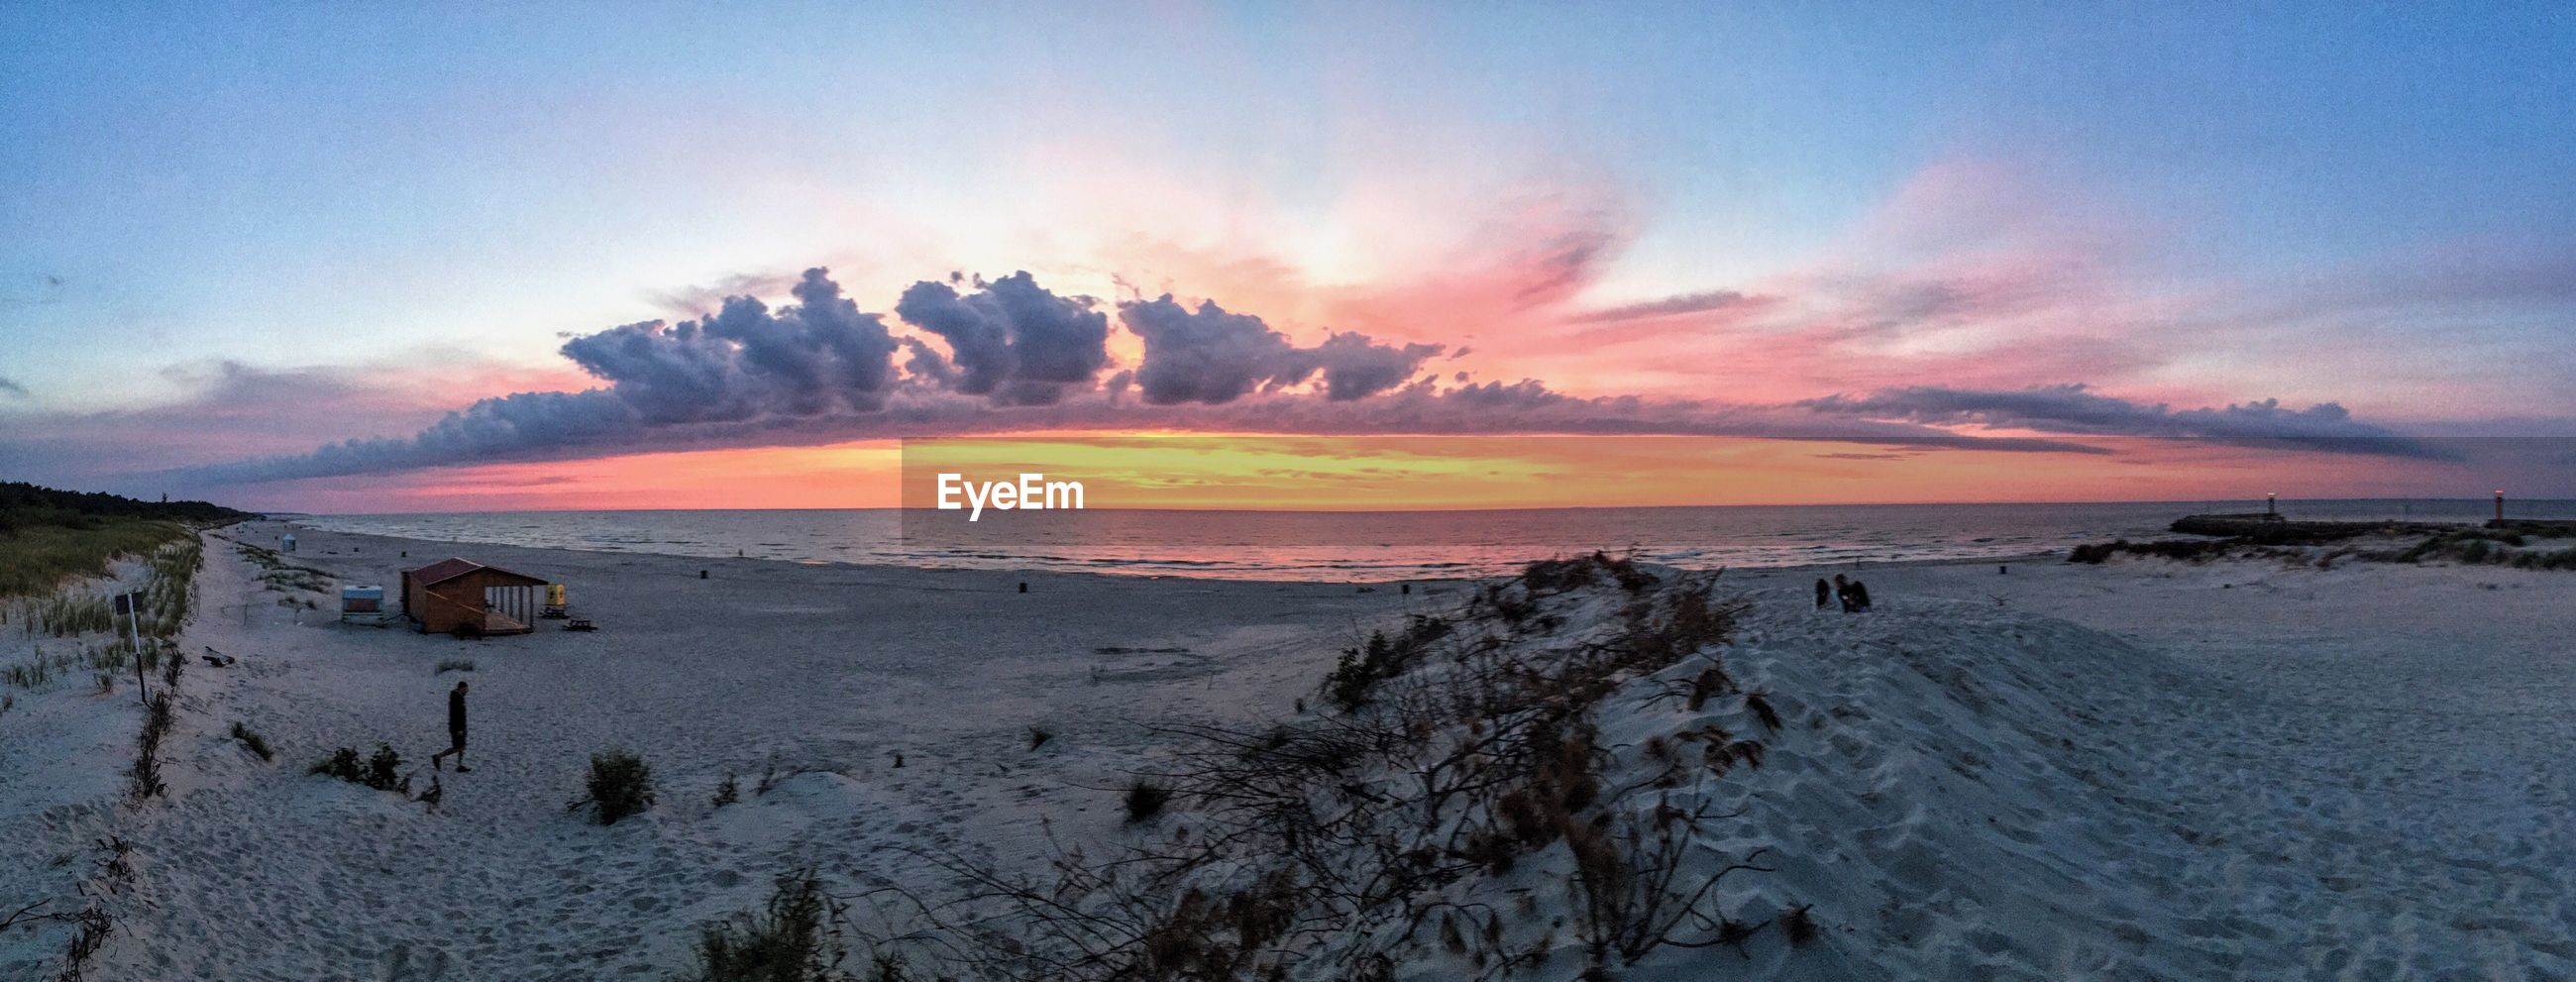 PANORAMIC VIEW OF BEACH AGAINST ROMANTIC SKY AT SUNSET